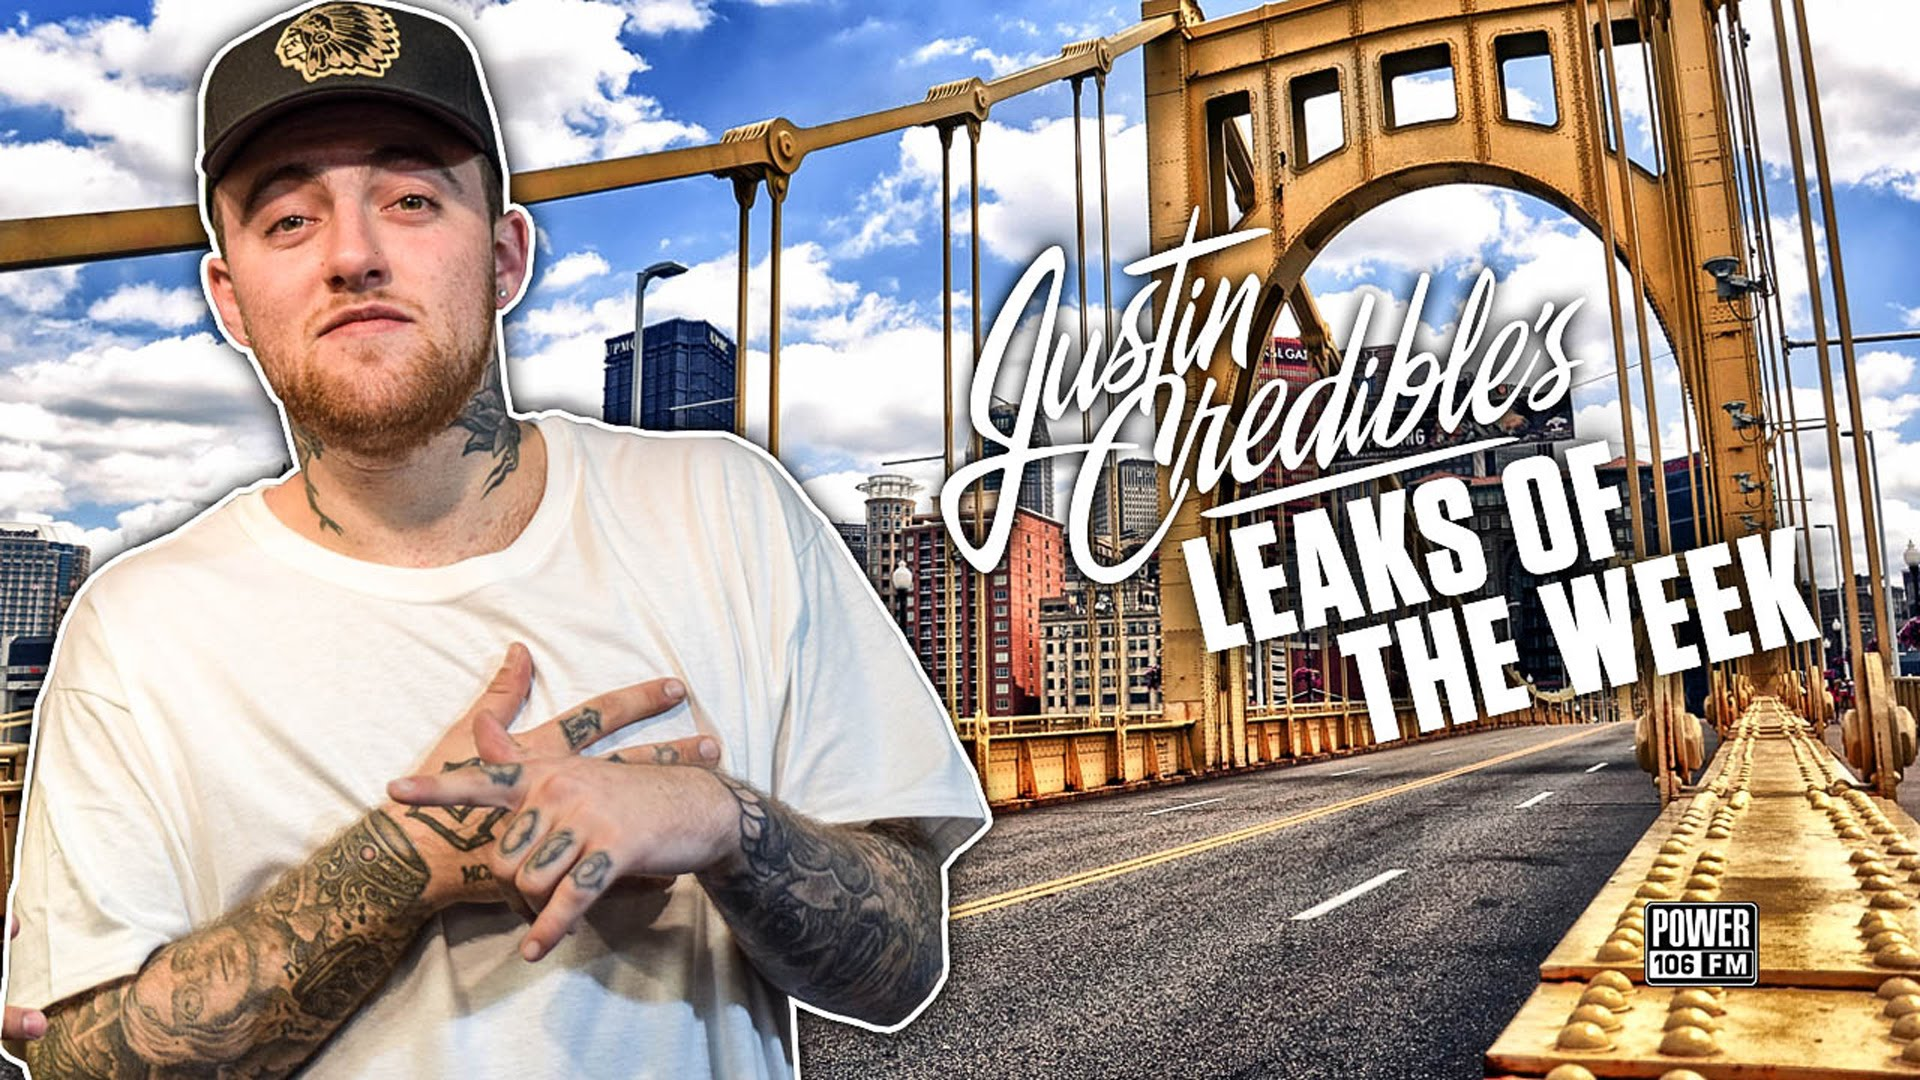 Justin Credible's #LeaksOfTheWeek w/ DJ Khaled, Joe Moses, & Mac Miller (Video)